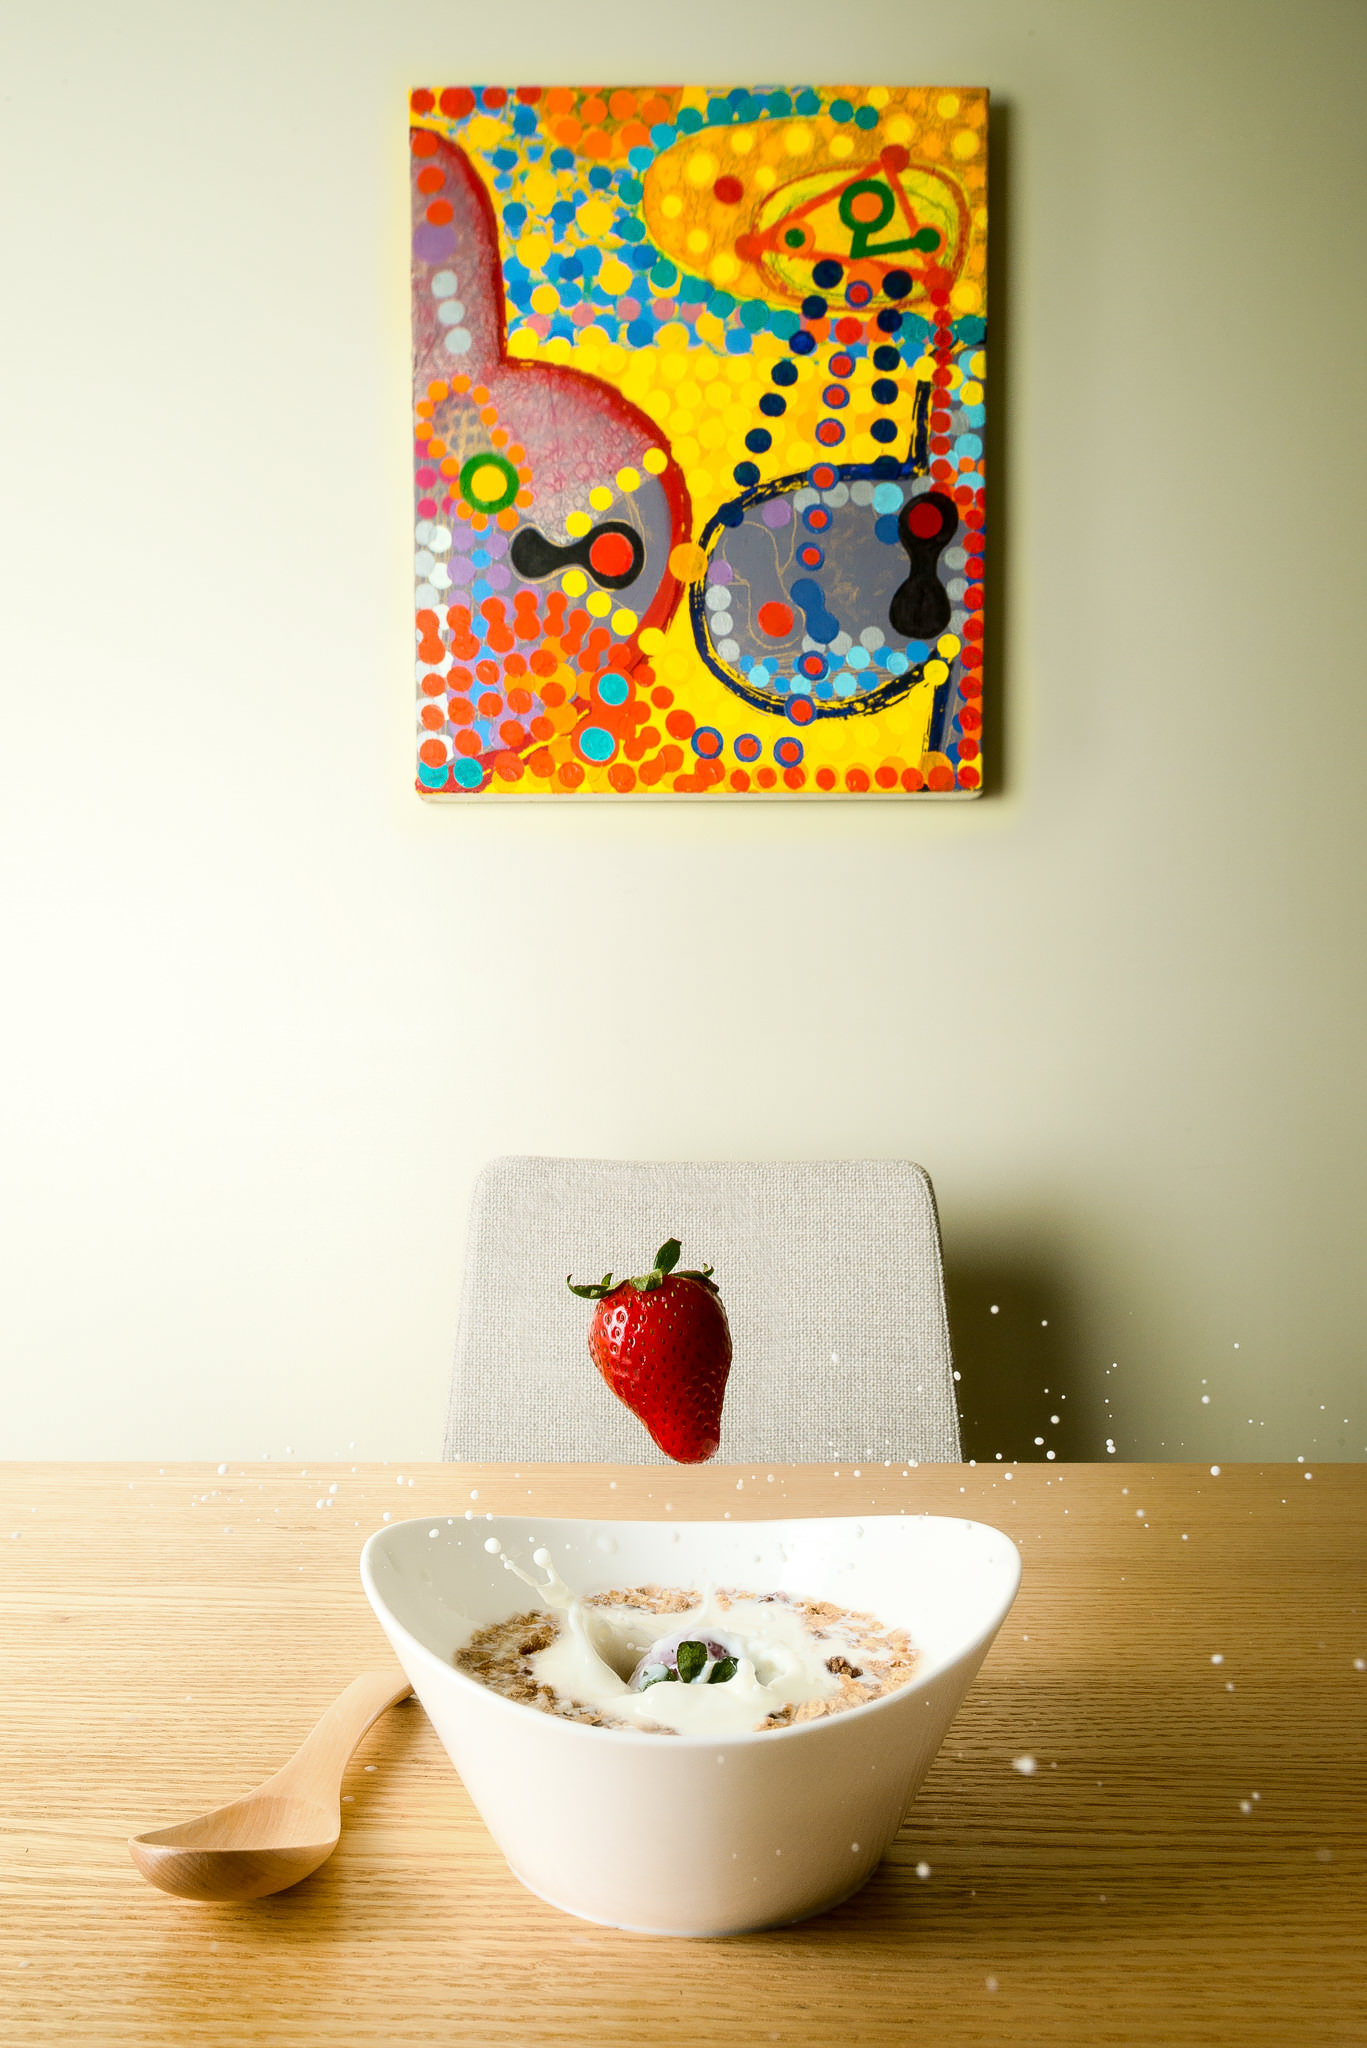 Breakfast Cereal Still Life